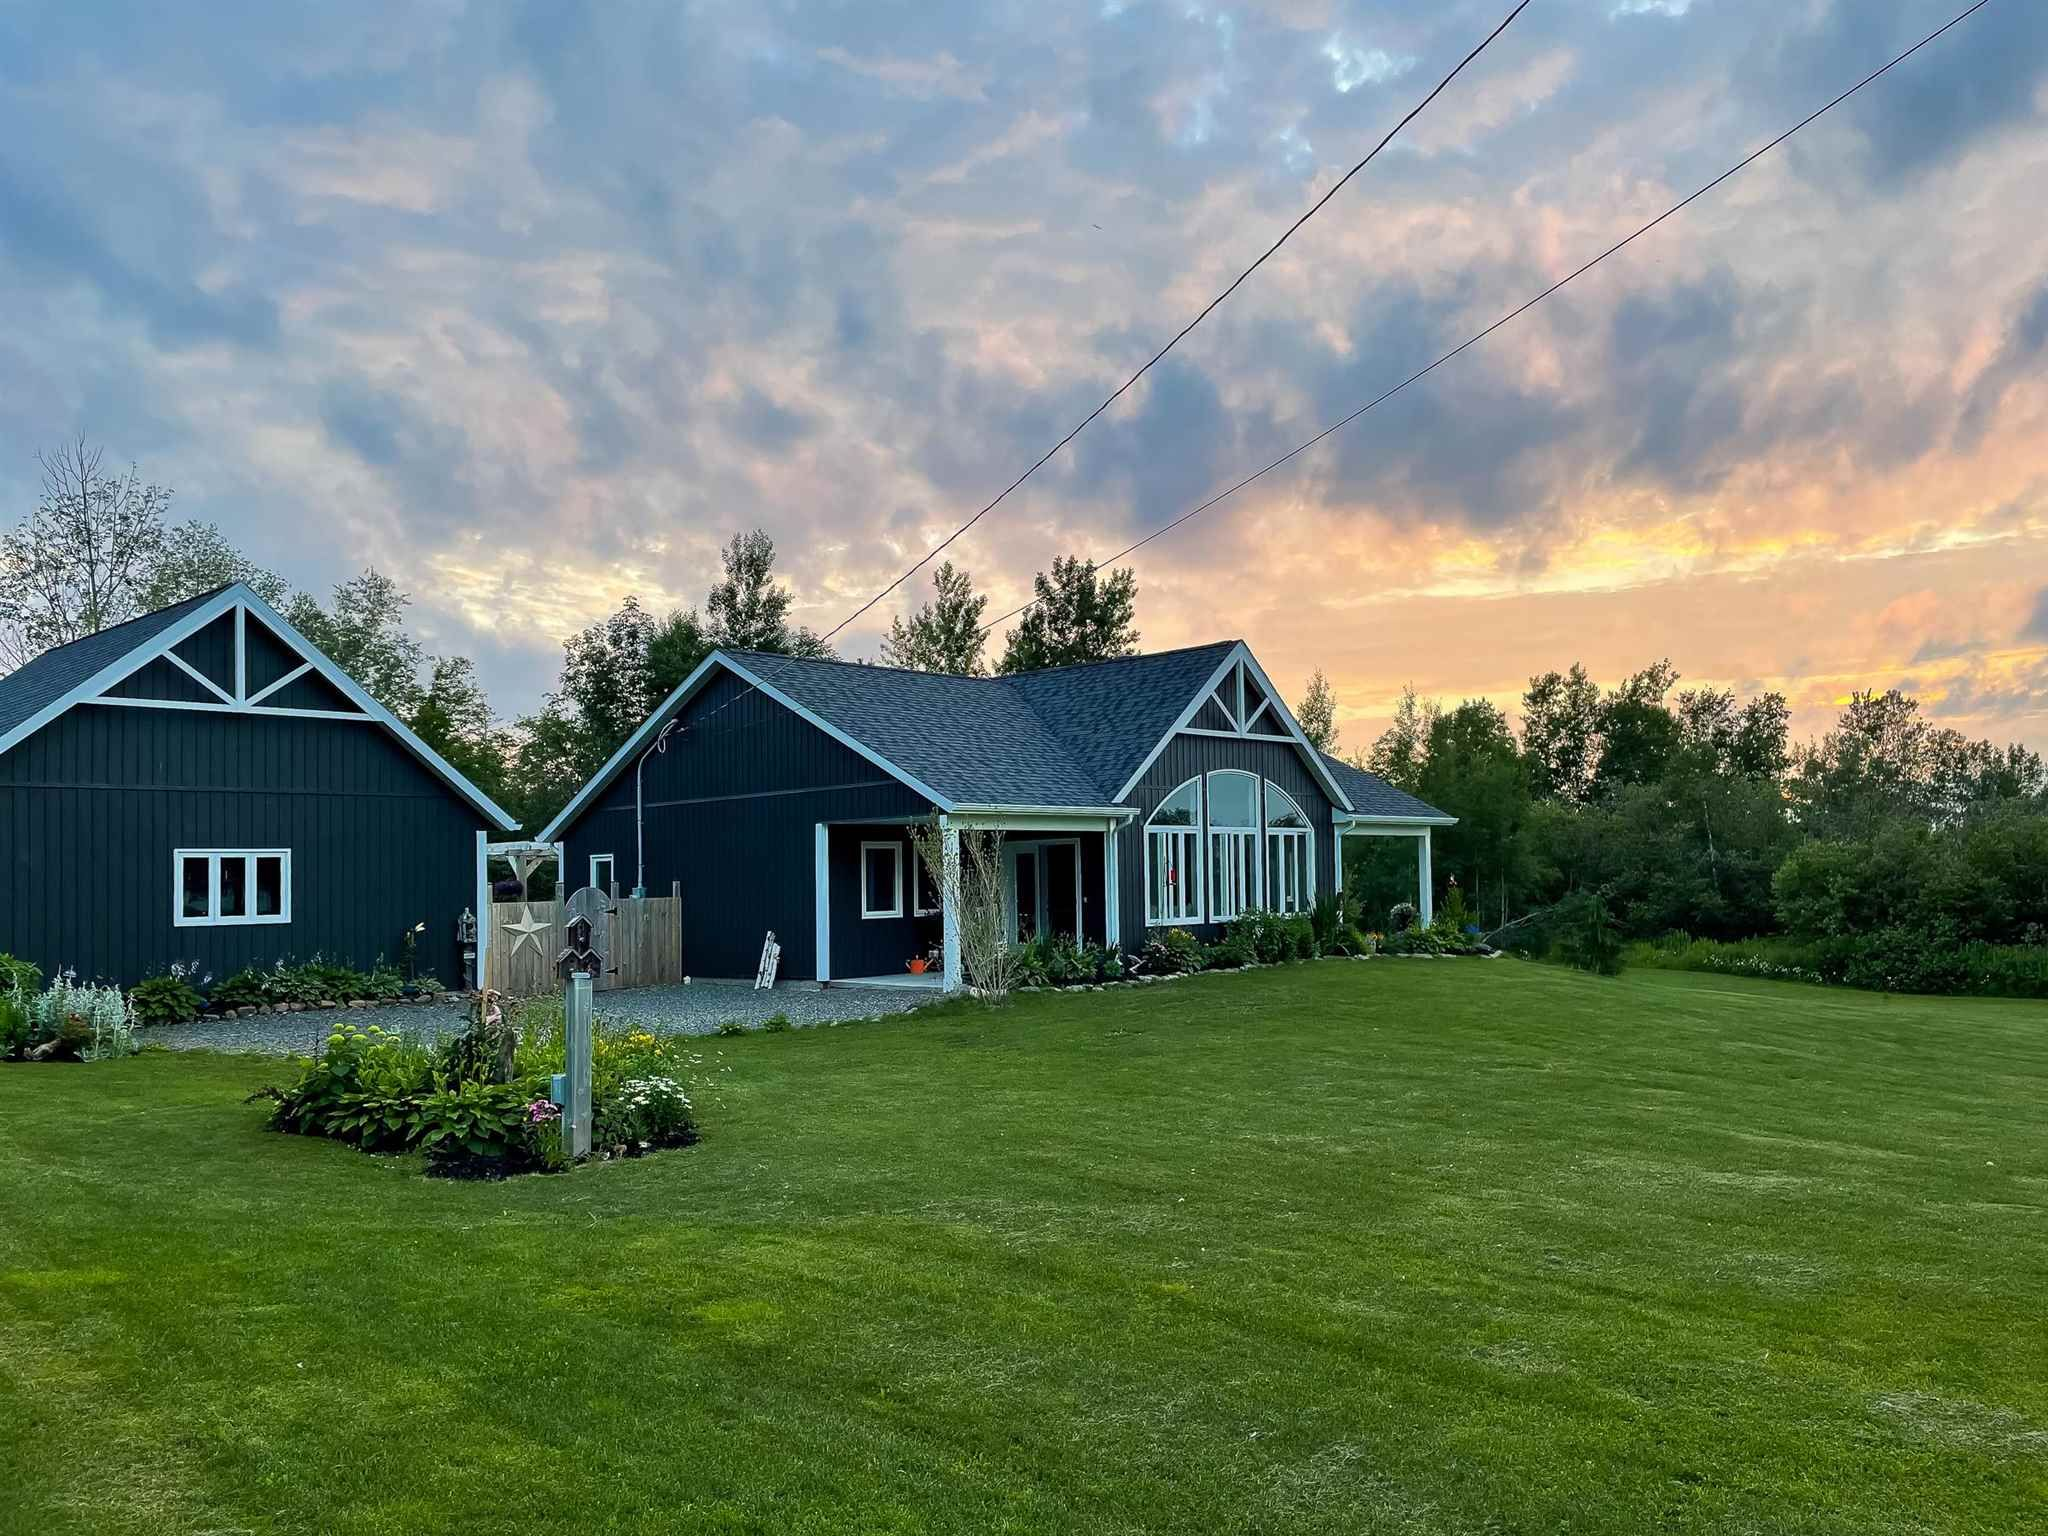 Main Photo: 503 West Halls Harbour Road in Halls Harbour: 404-Kings County Residential for sale (Annapolis Valley)  : MLS®# 202117326